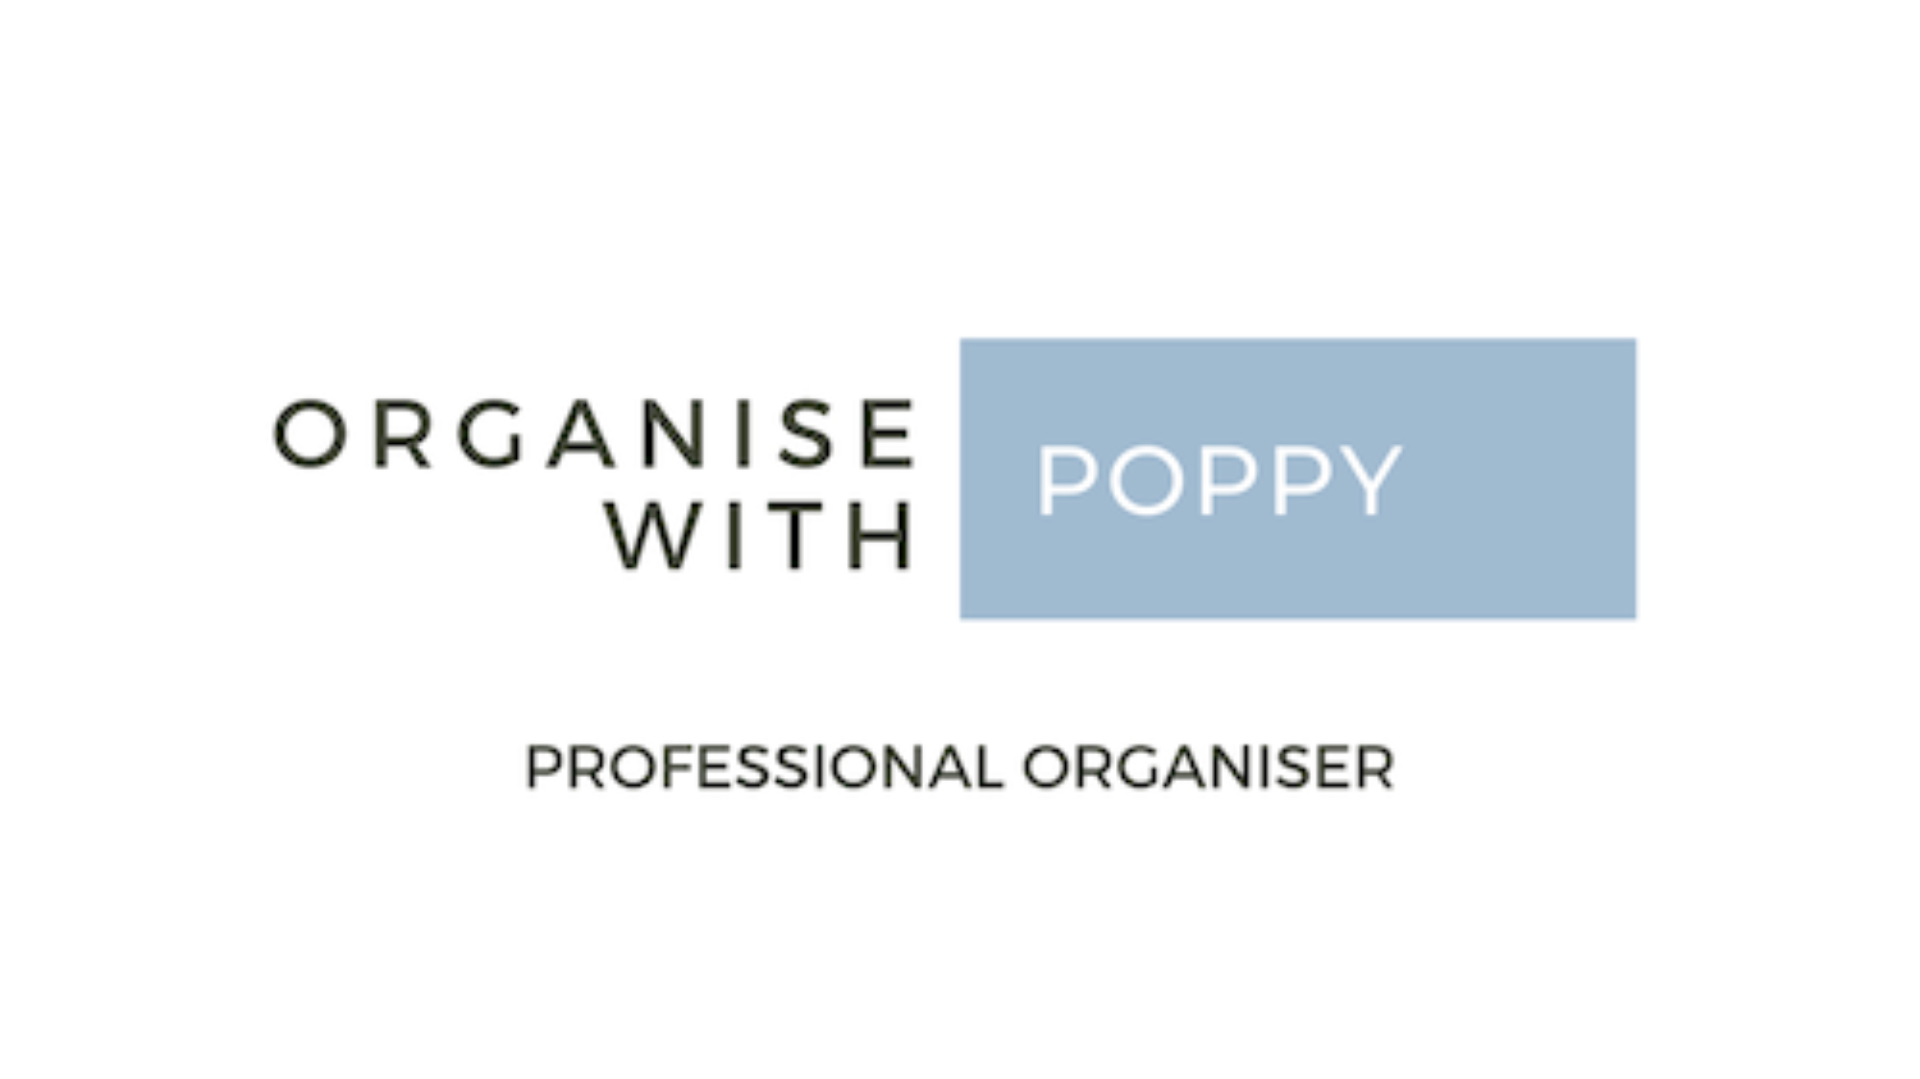 Organise with Poppy